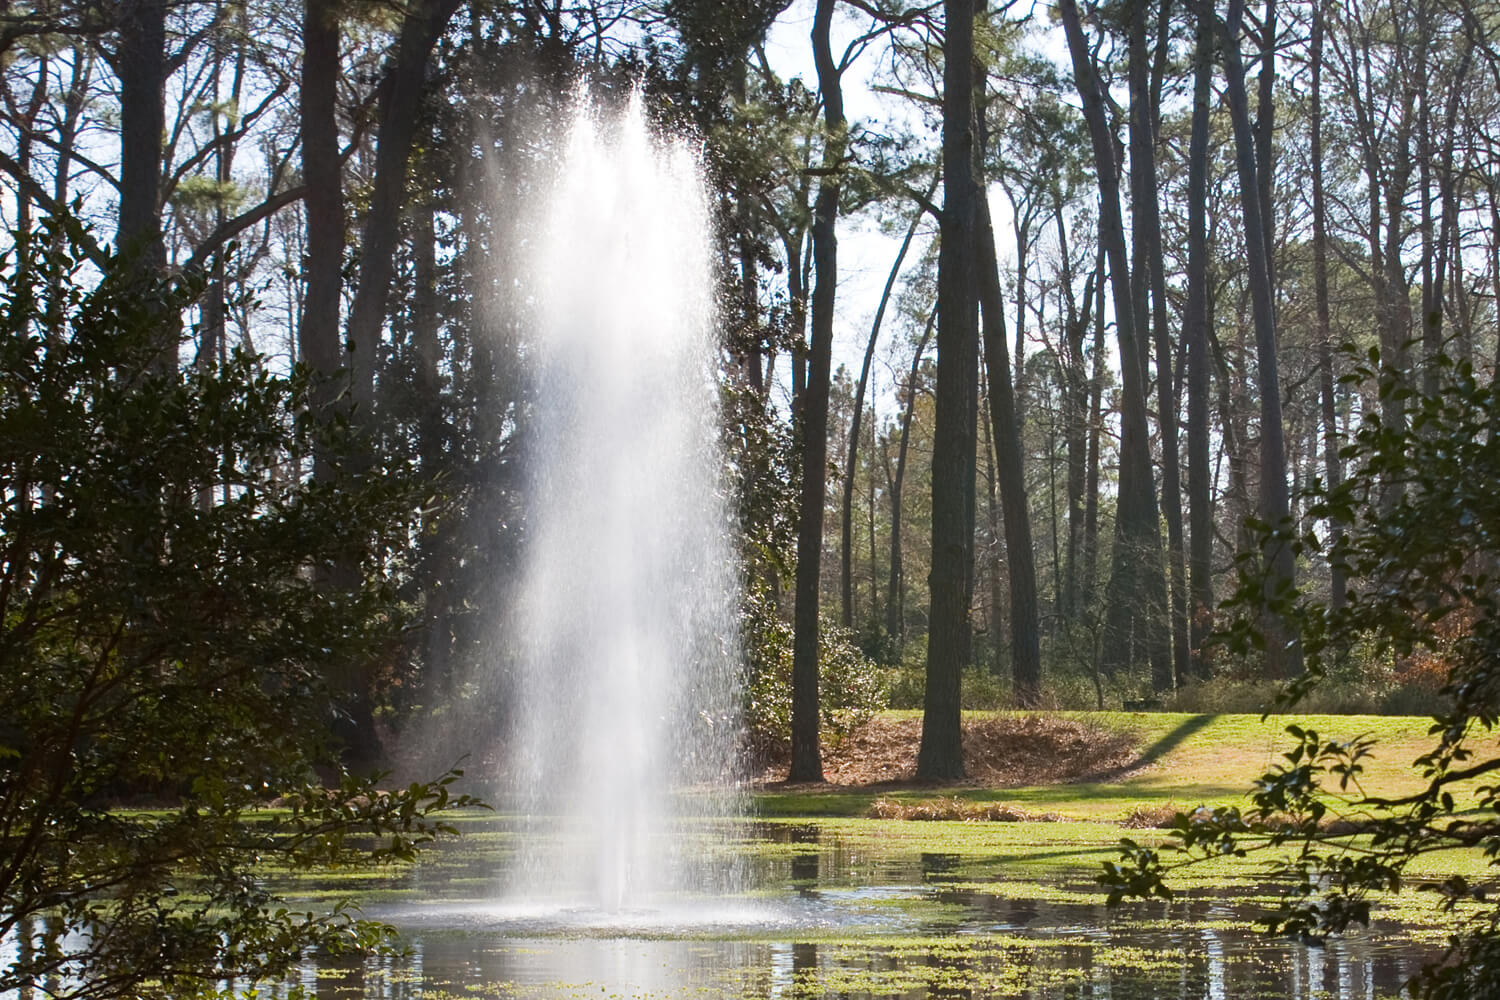 One of Otterbine's Rocket Aerating Fountains